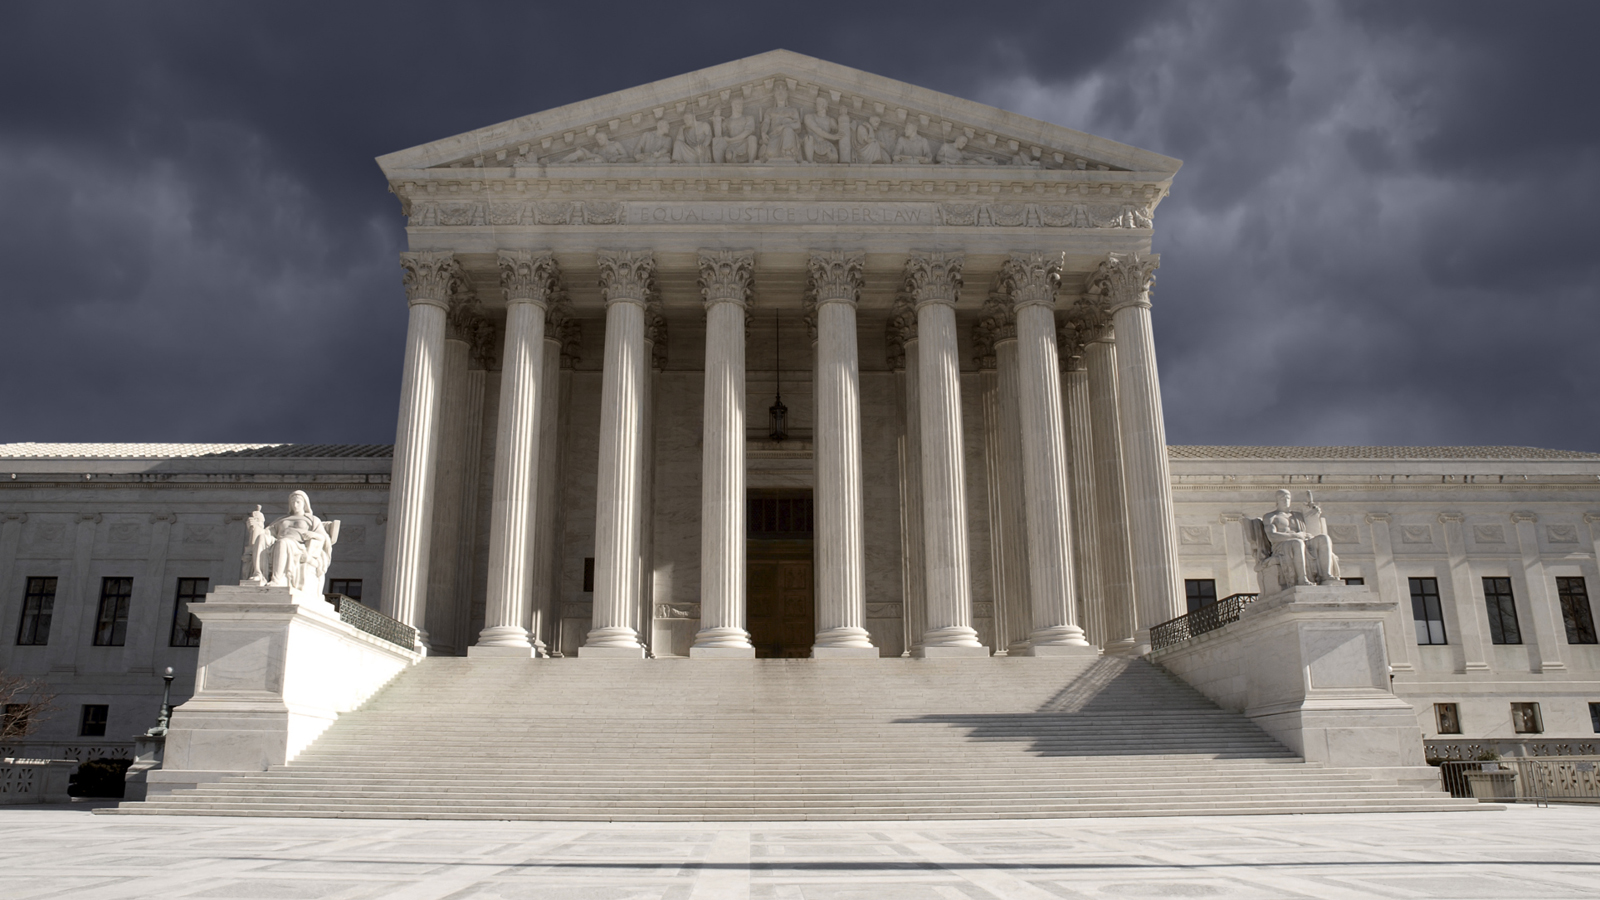 BREAKING: Supreme Court of the United States Will Decide Transgender Student's Case